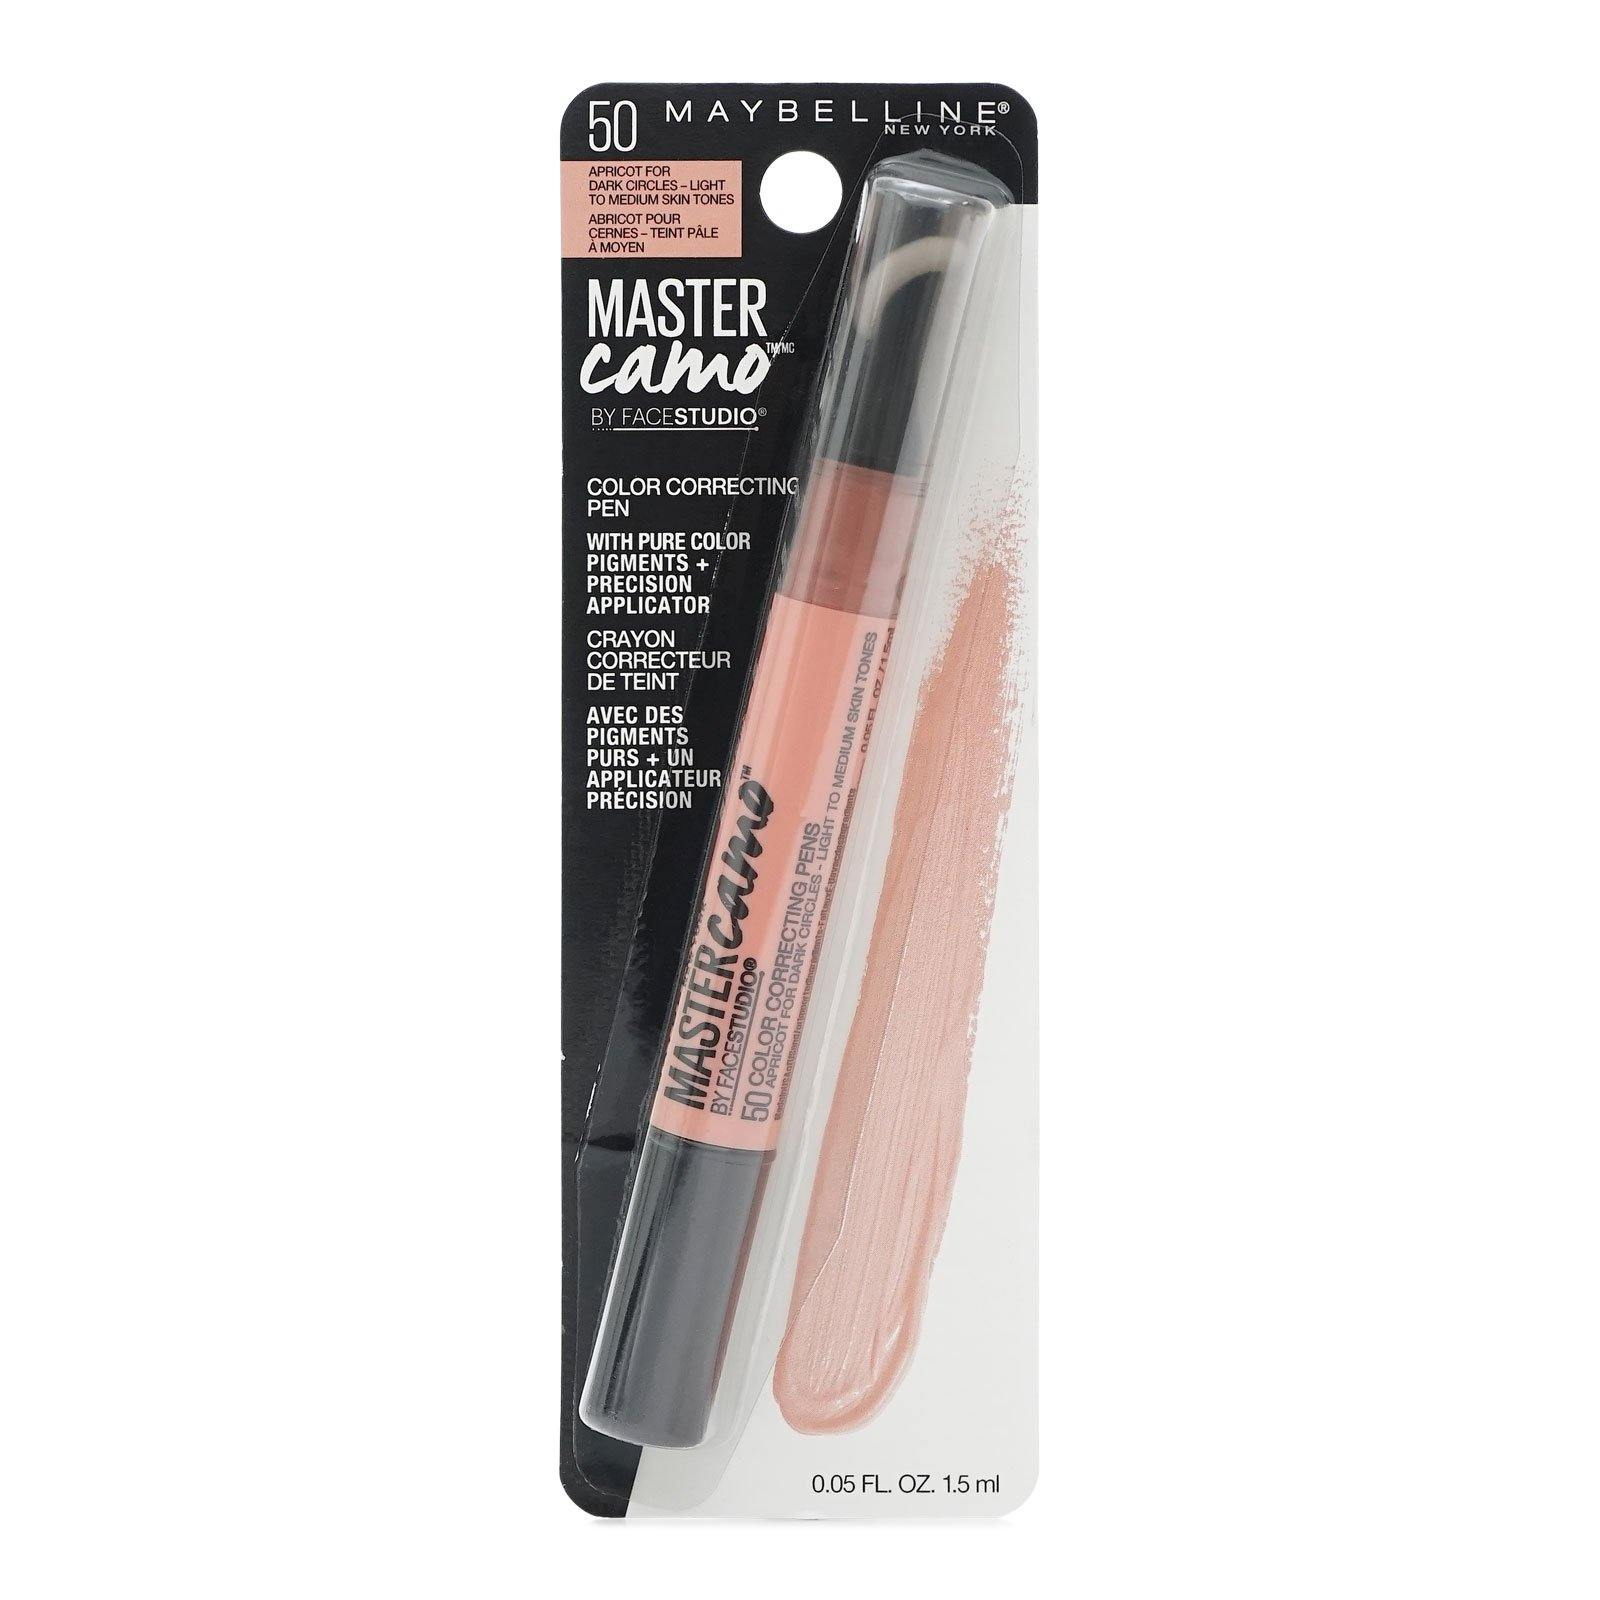 MAYBELLINE MASTER CAMO CONCEALER PEN- APRICOT (24/cs)